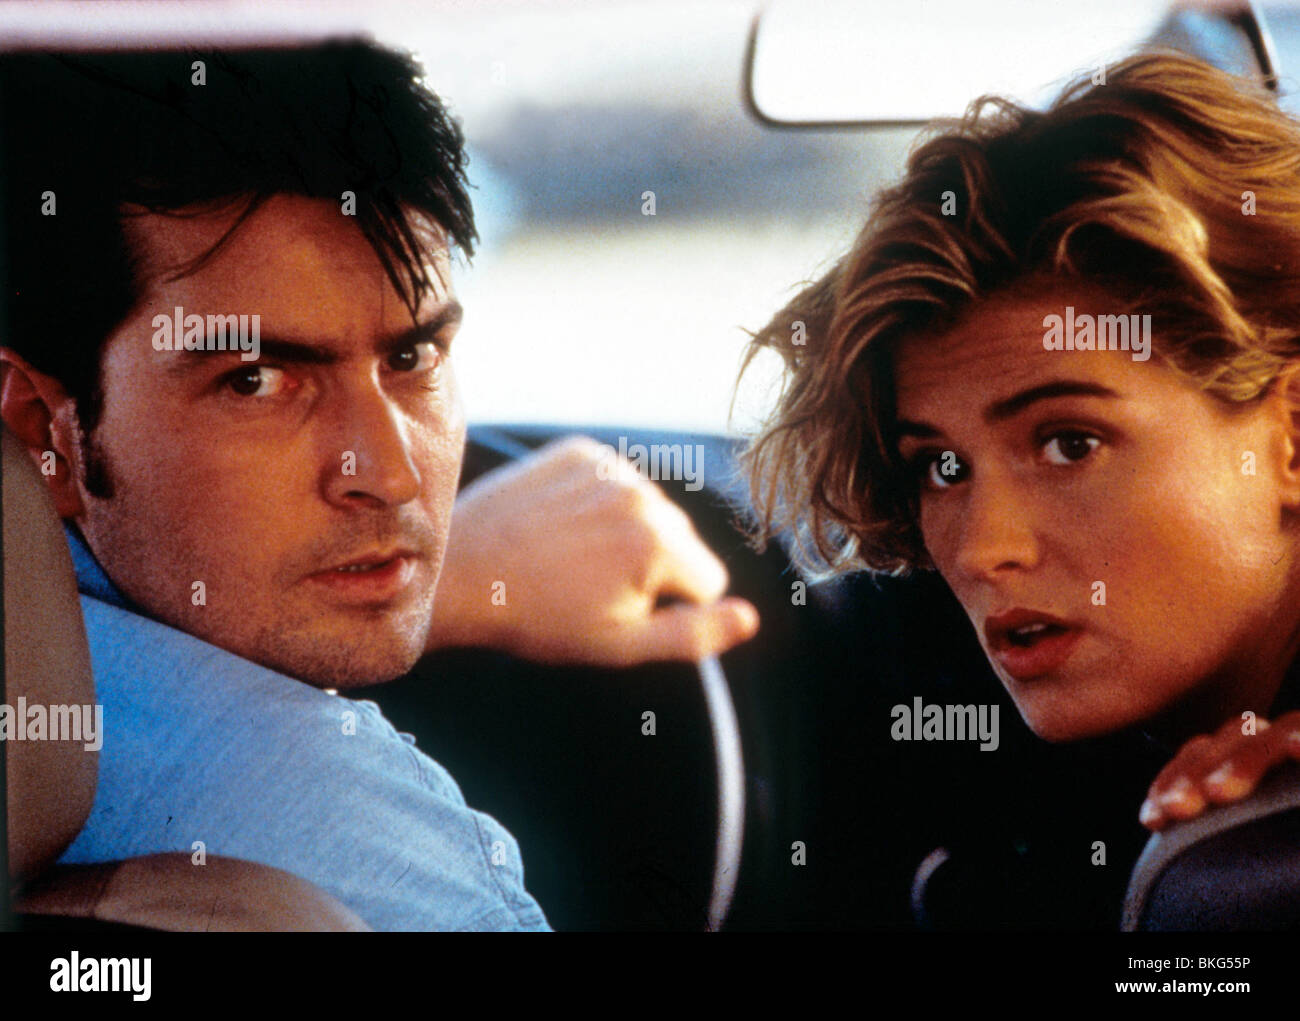 THE CHASE (1994) CHARLIE SHEEN, KRISTY SWANSON CHAS 018 - Stock Image